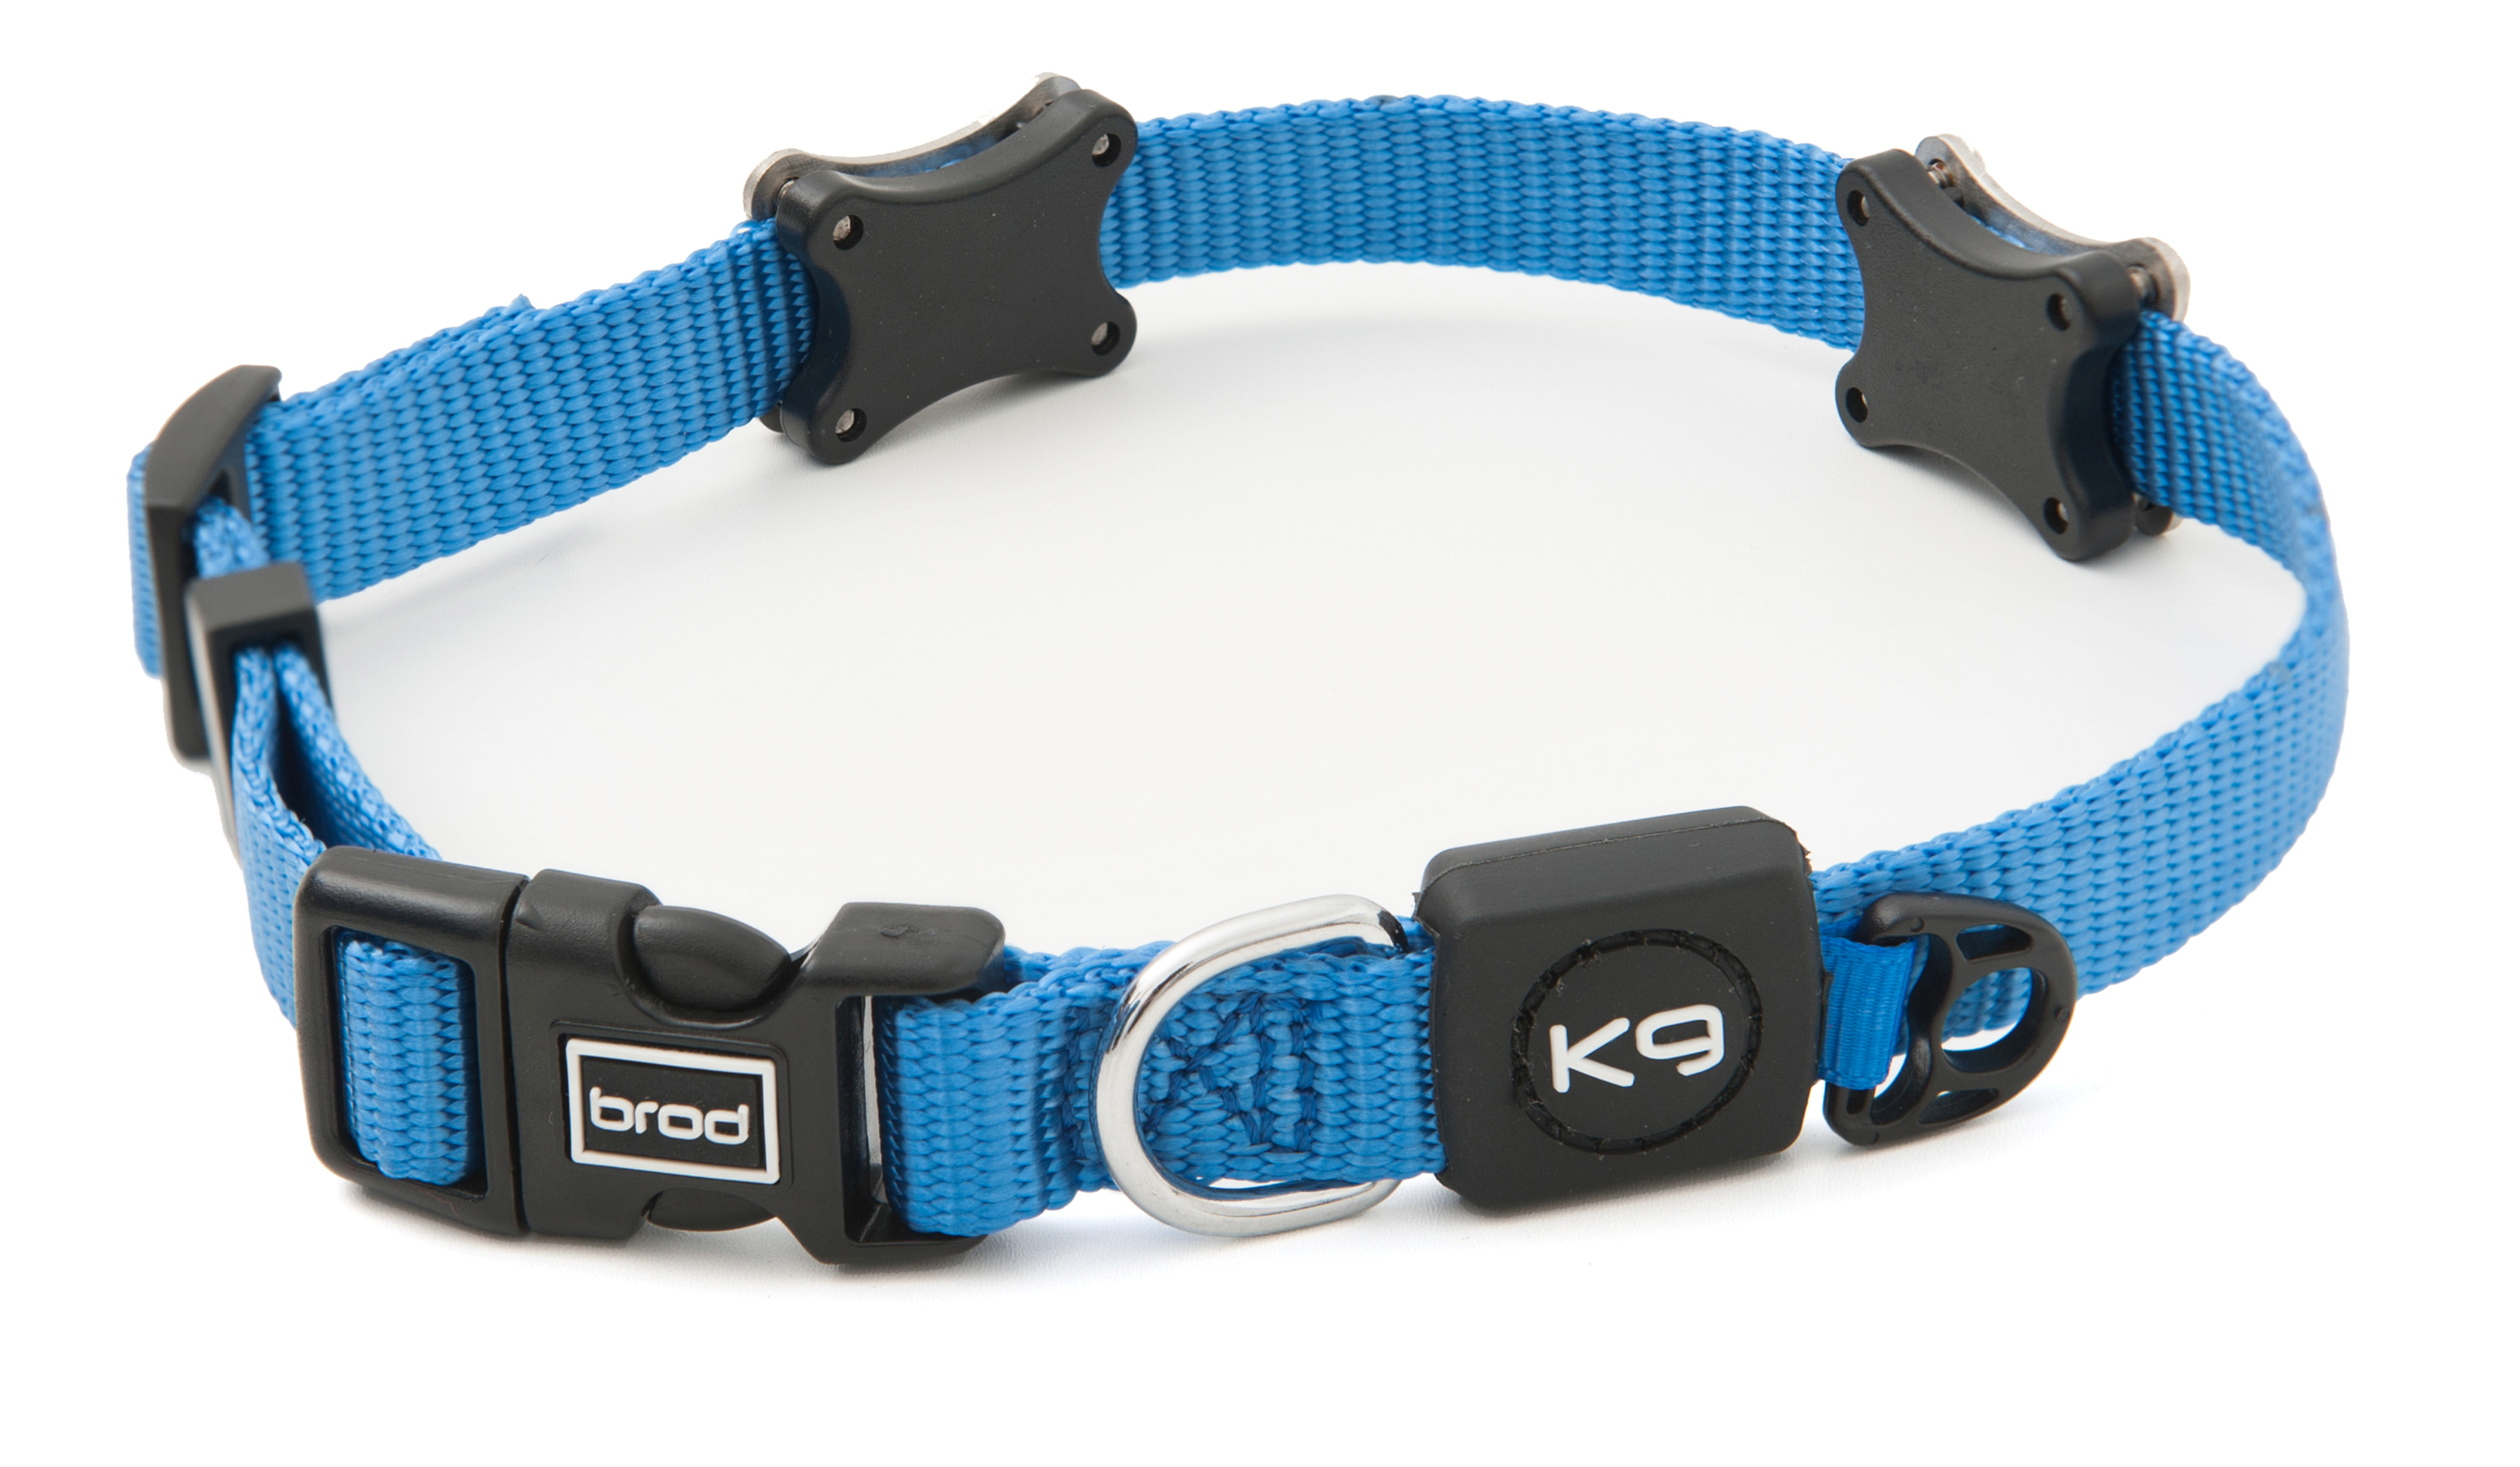 BrodPod magnetic K9 collar